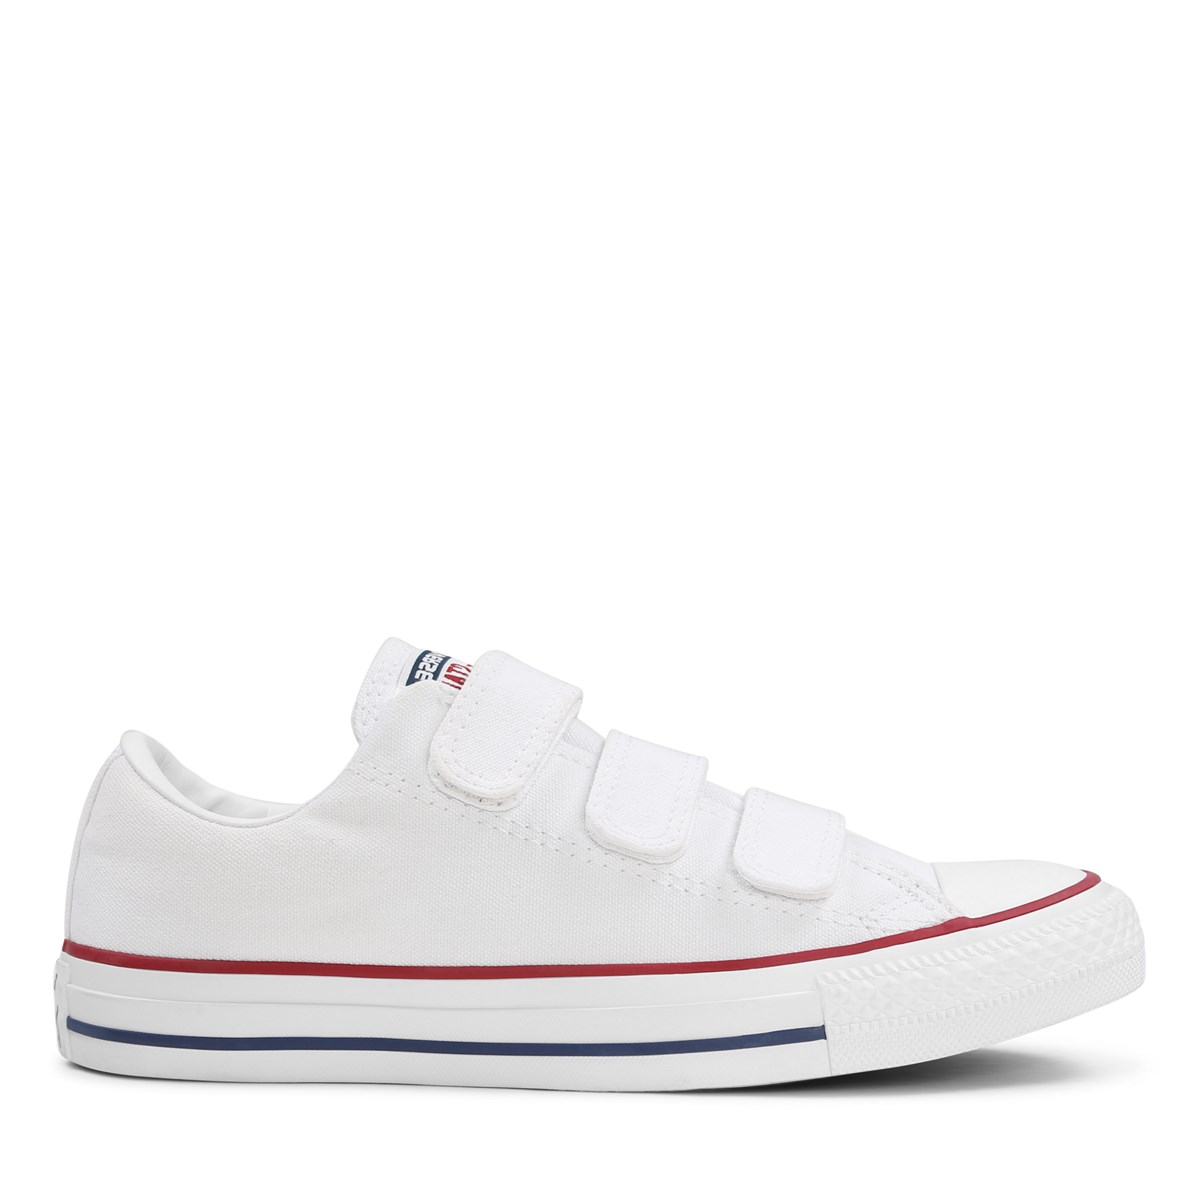 3d94f6880b3 Women s Chuck Taylor All Star 3V Canvas Sneaker. Previous. default view ·  ALT1 · ALT2